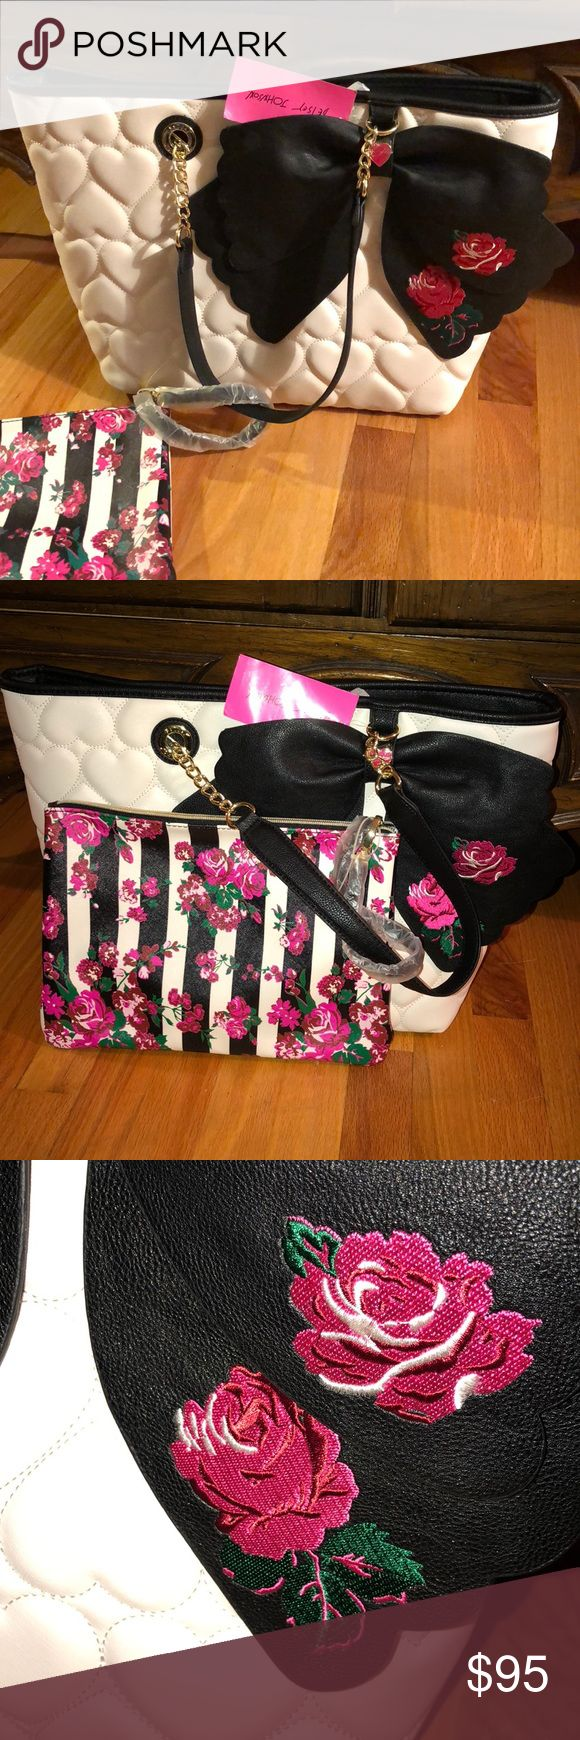 White/Black/ Rose Bow Purse! Gorgeous Betsey Johnson Purse!!! Snap closure on big purse, zipper on smaller inside purse. Black bow with two embroidered roses on the white side of the purse. Embroidered white heart puffy heart pattern on the front. Black puffy heart pattern on the back with gold Betsey hardware. Comes with an extra purse inside that can be used as a wristlet, or even an tablet case. 11 inches tall, 17 inches wide. Inside wristlet is 9 inches tall, 12 inches wide. Betsey…